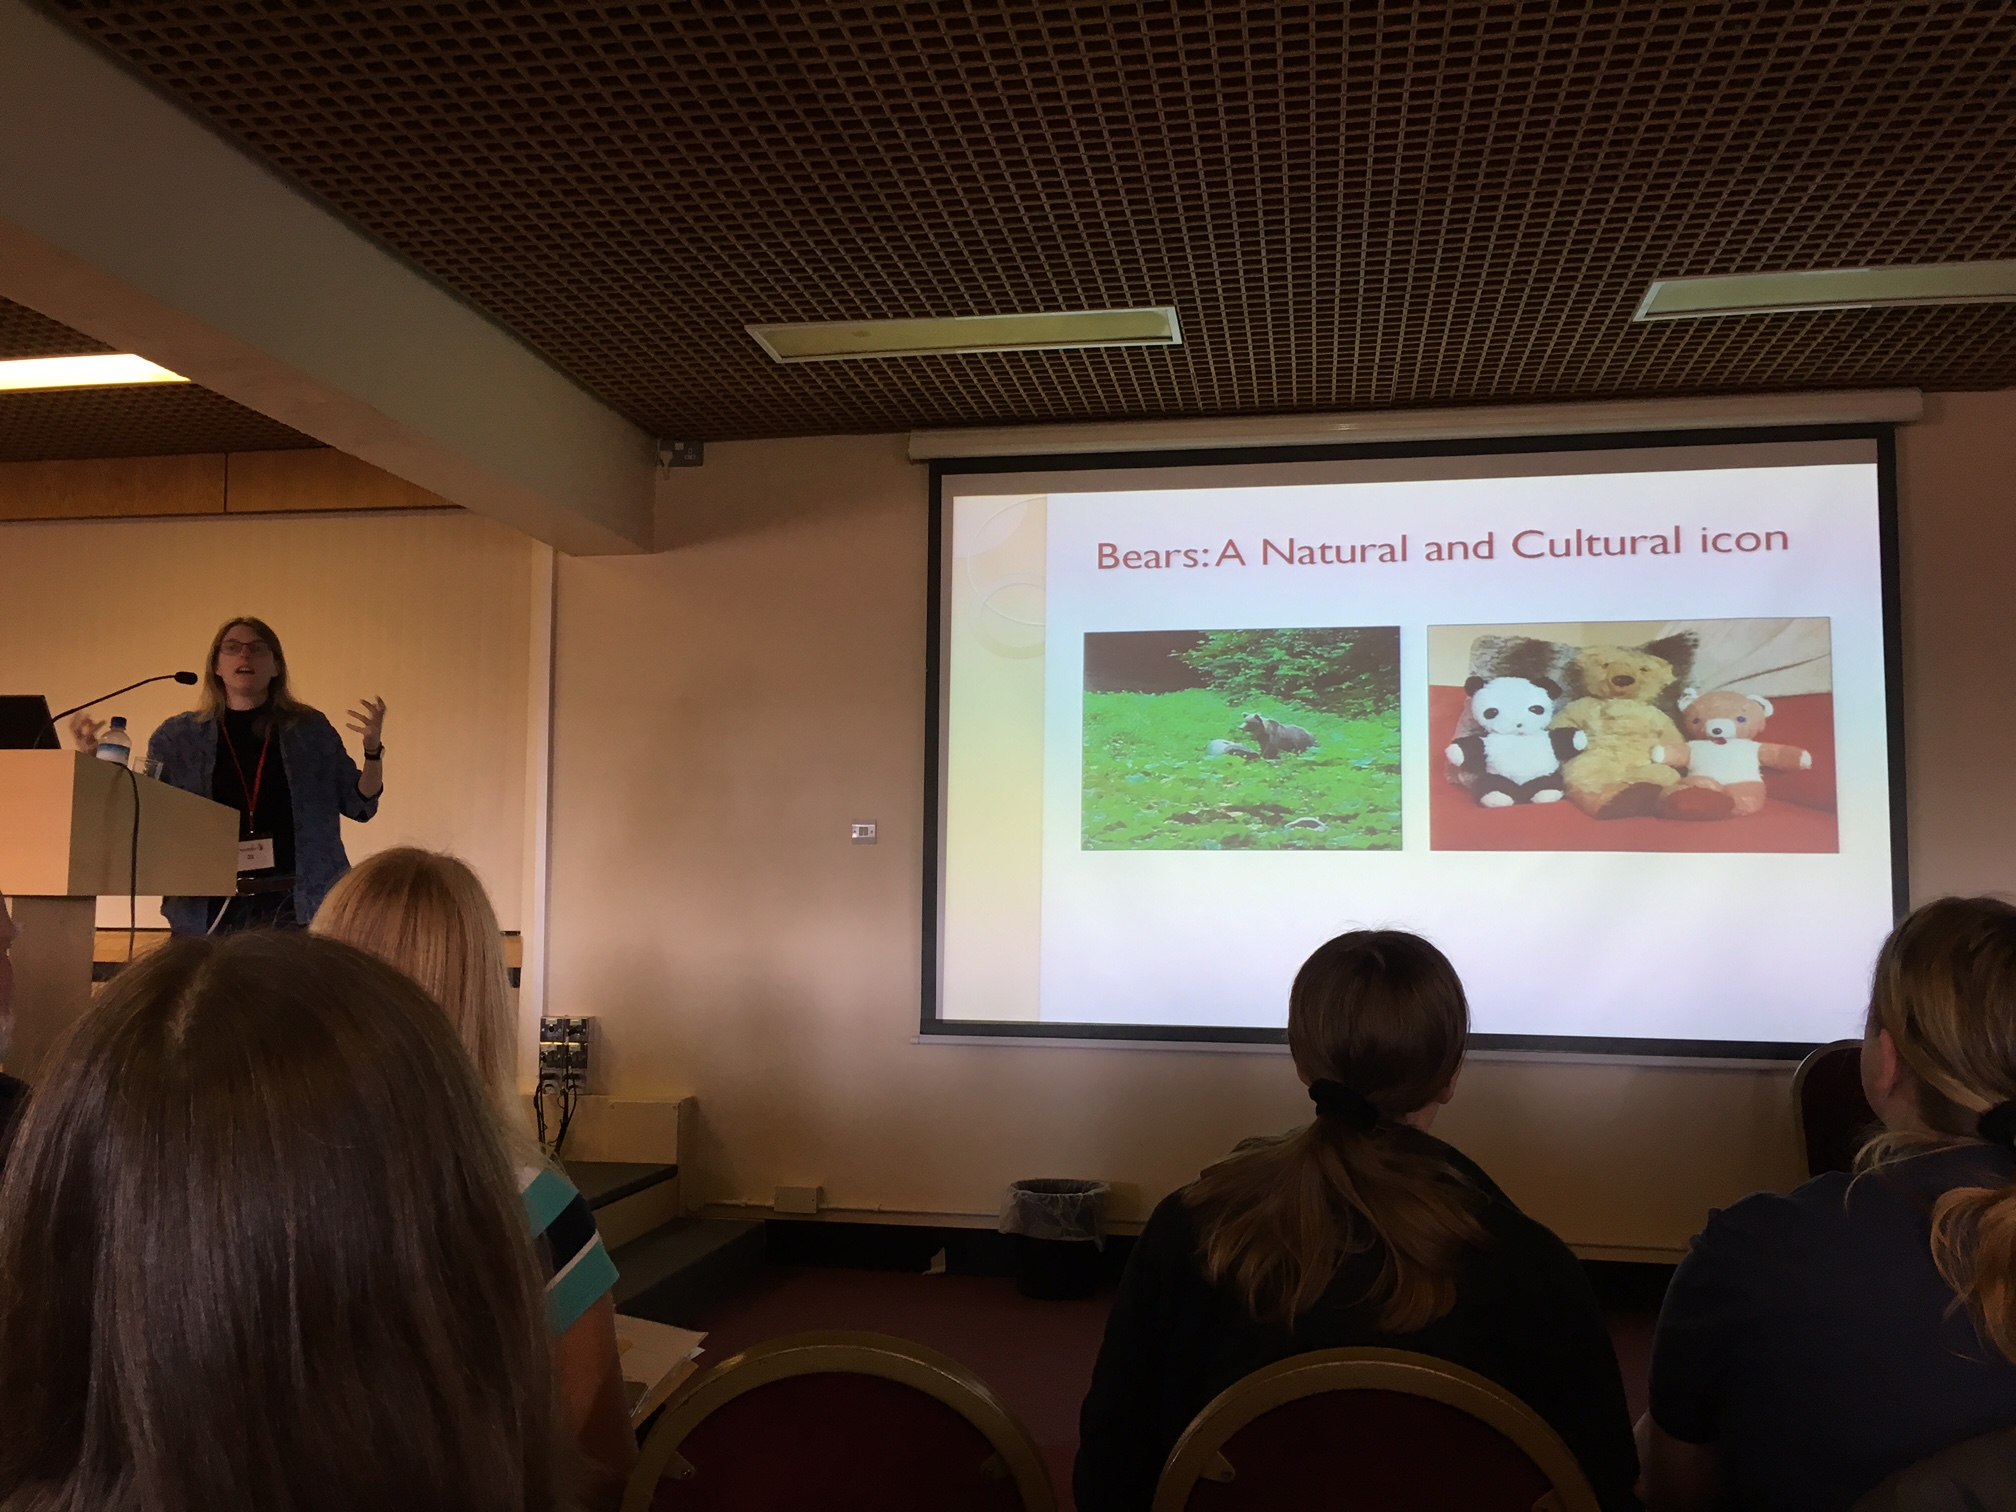 A fascinating talk on the cultural and natural significance of Bears in the UK and how our depiction of them through time gives a clue as to whether they were still at large in the countryside or whether the residing only in Man's cages